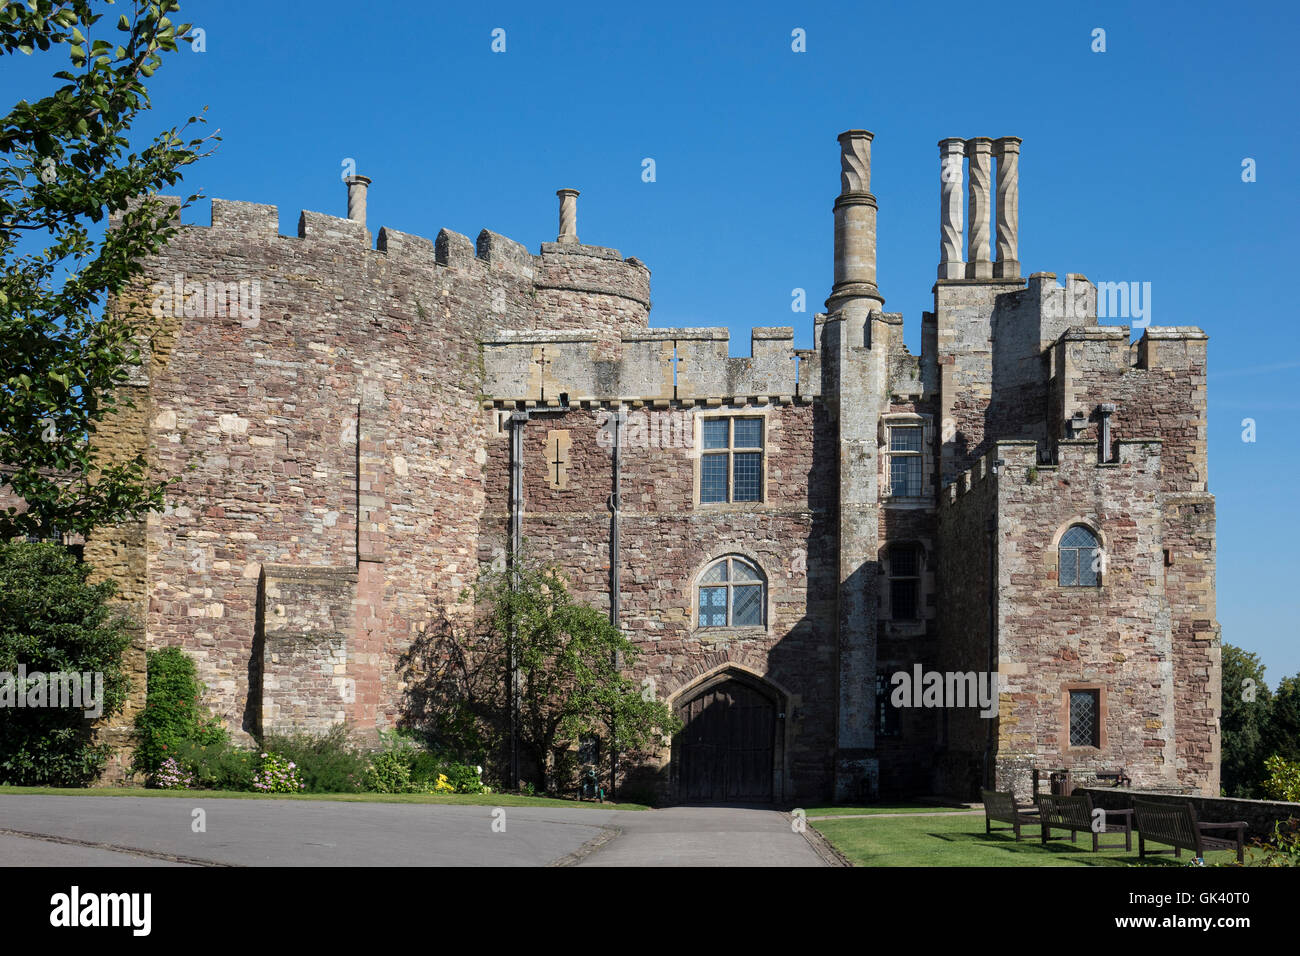 England, Gloucestershire, Berkeley castle - Stock Image